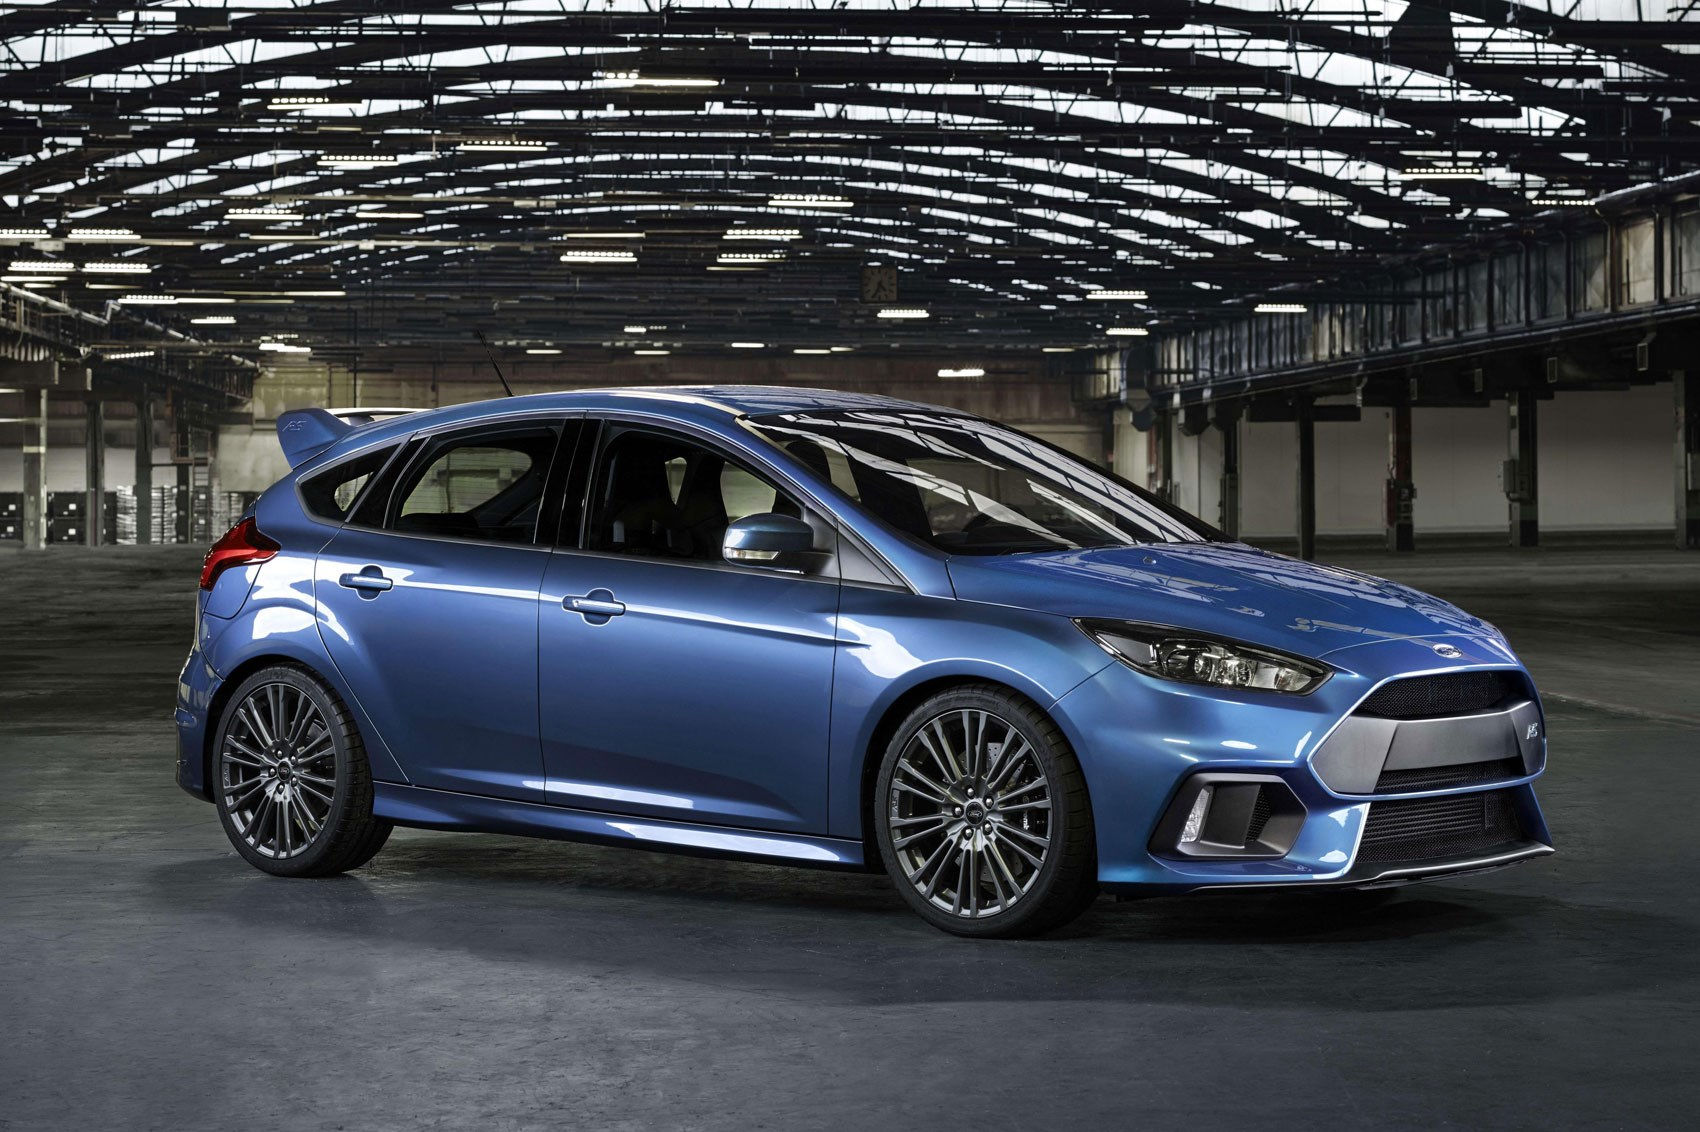 Ford Focus RS 2016 Prices And Stats Revealed 165mph GBP28940 By CAR Magazine